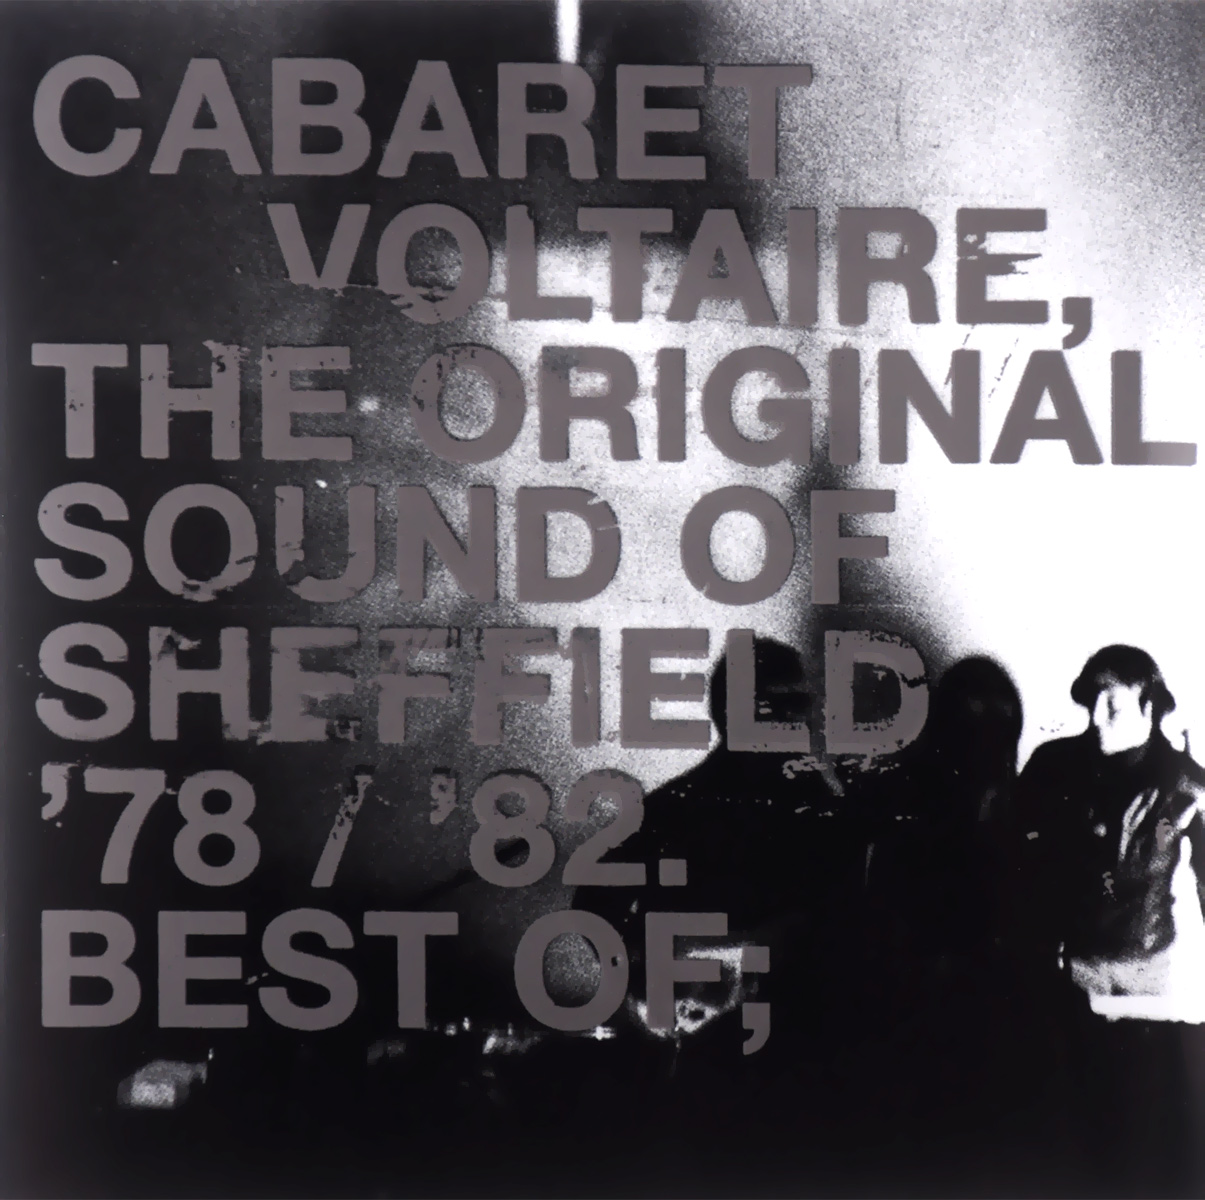 Cabaret Voltaire Cabaret Voltaire. The Original Sound Of Sheffield 78 / 82. Best Of cabaret voltaire cabaret voltaire micro phonies